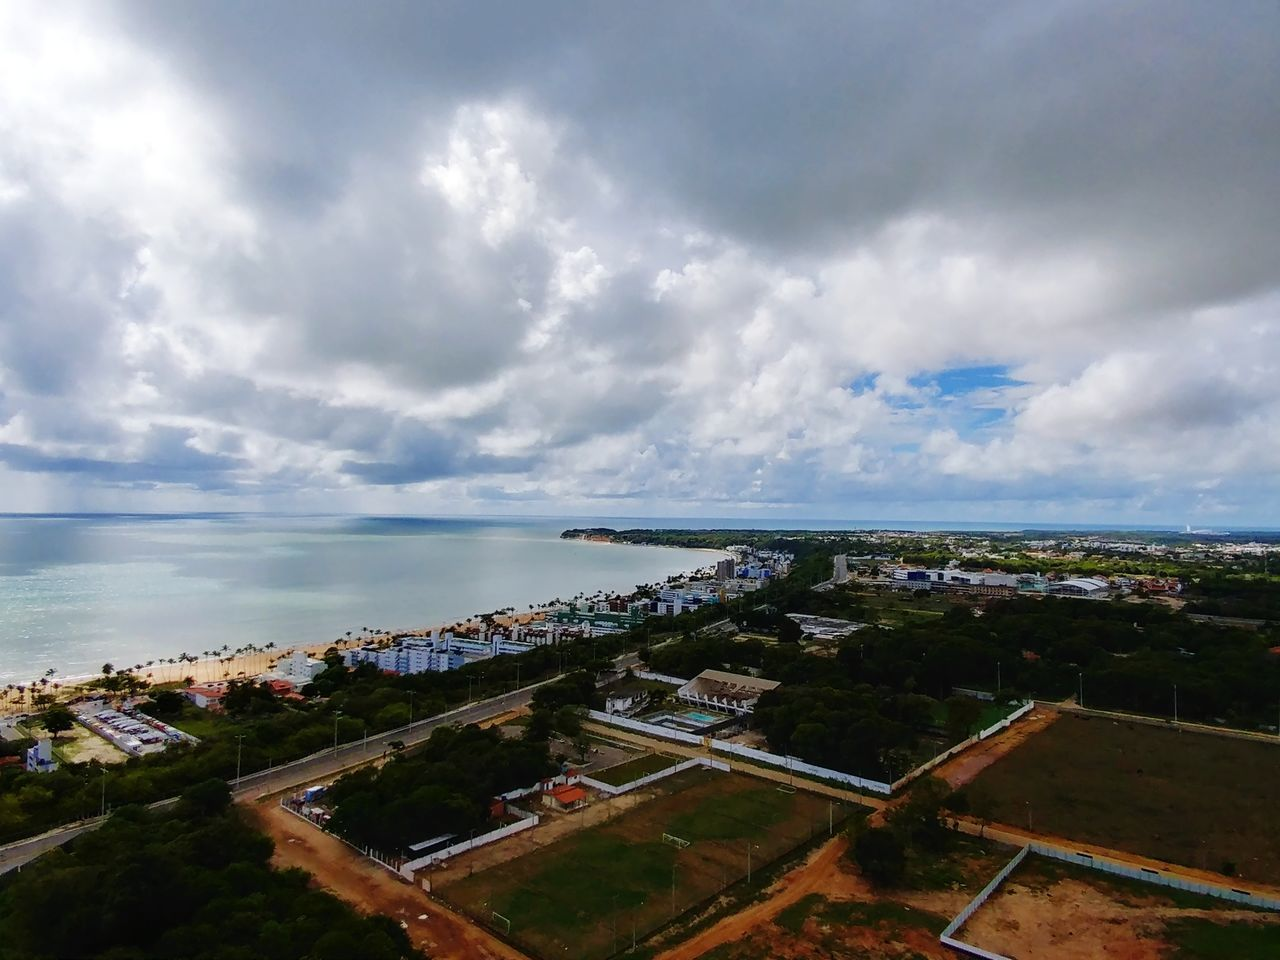 cloud - sky, architecture, built structure, sky, building exterior, sea, horizon over water, water, cityscape, high angle view, day, outdoors, city, no people, town, residential building, nature, scenics, tree, residential, beauty in nature